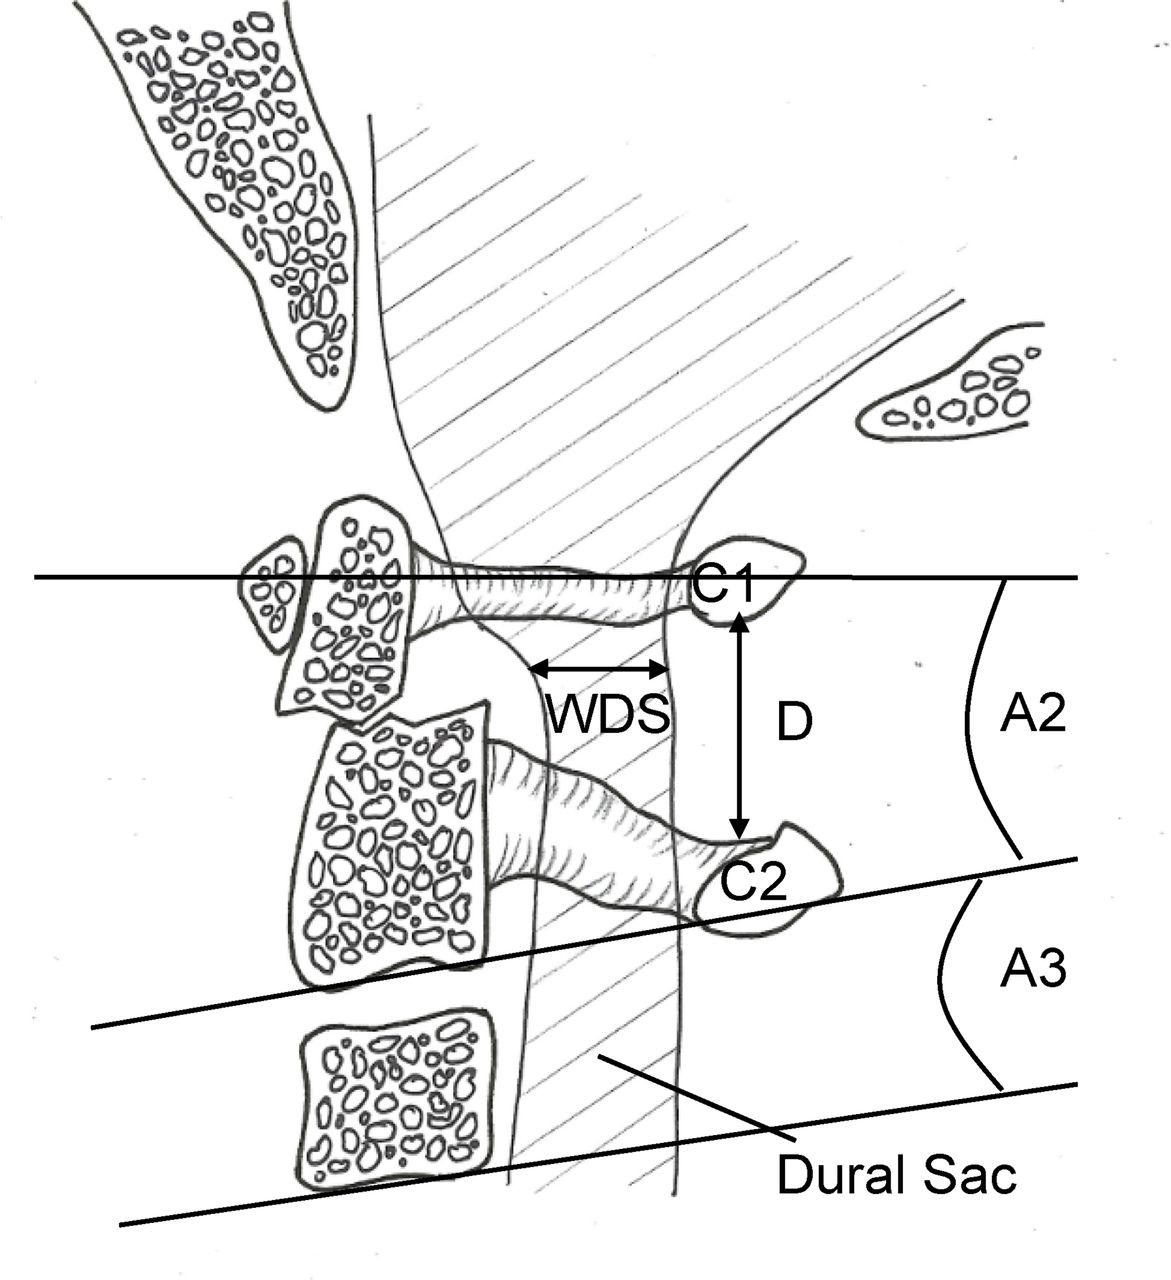 Cadaveric study of movement in the unstable upper cervical spine